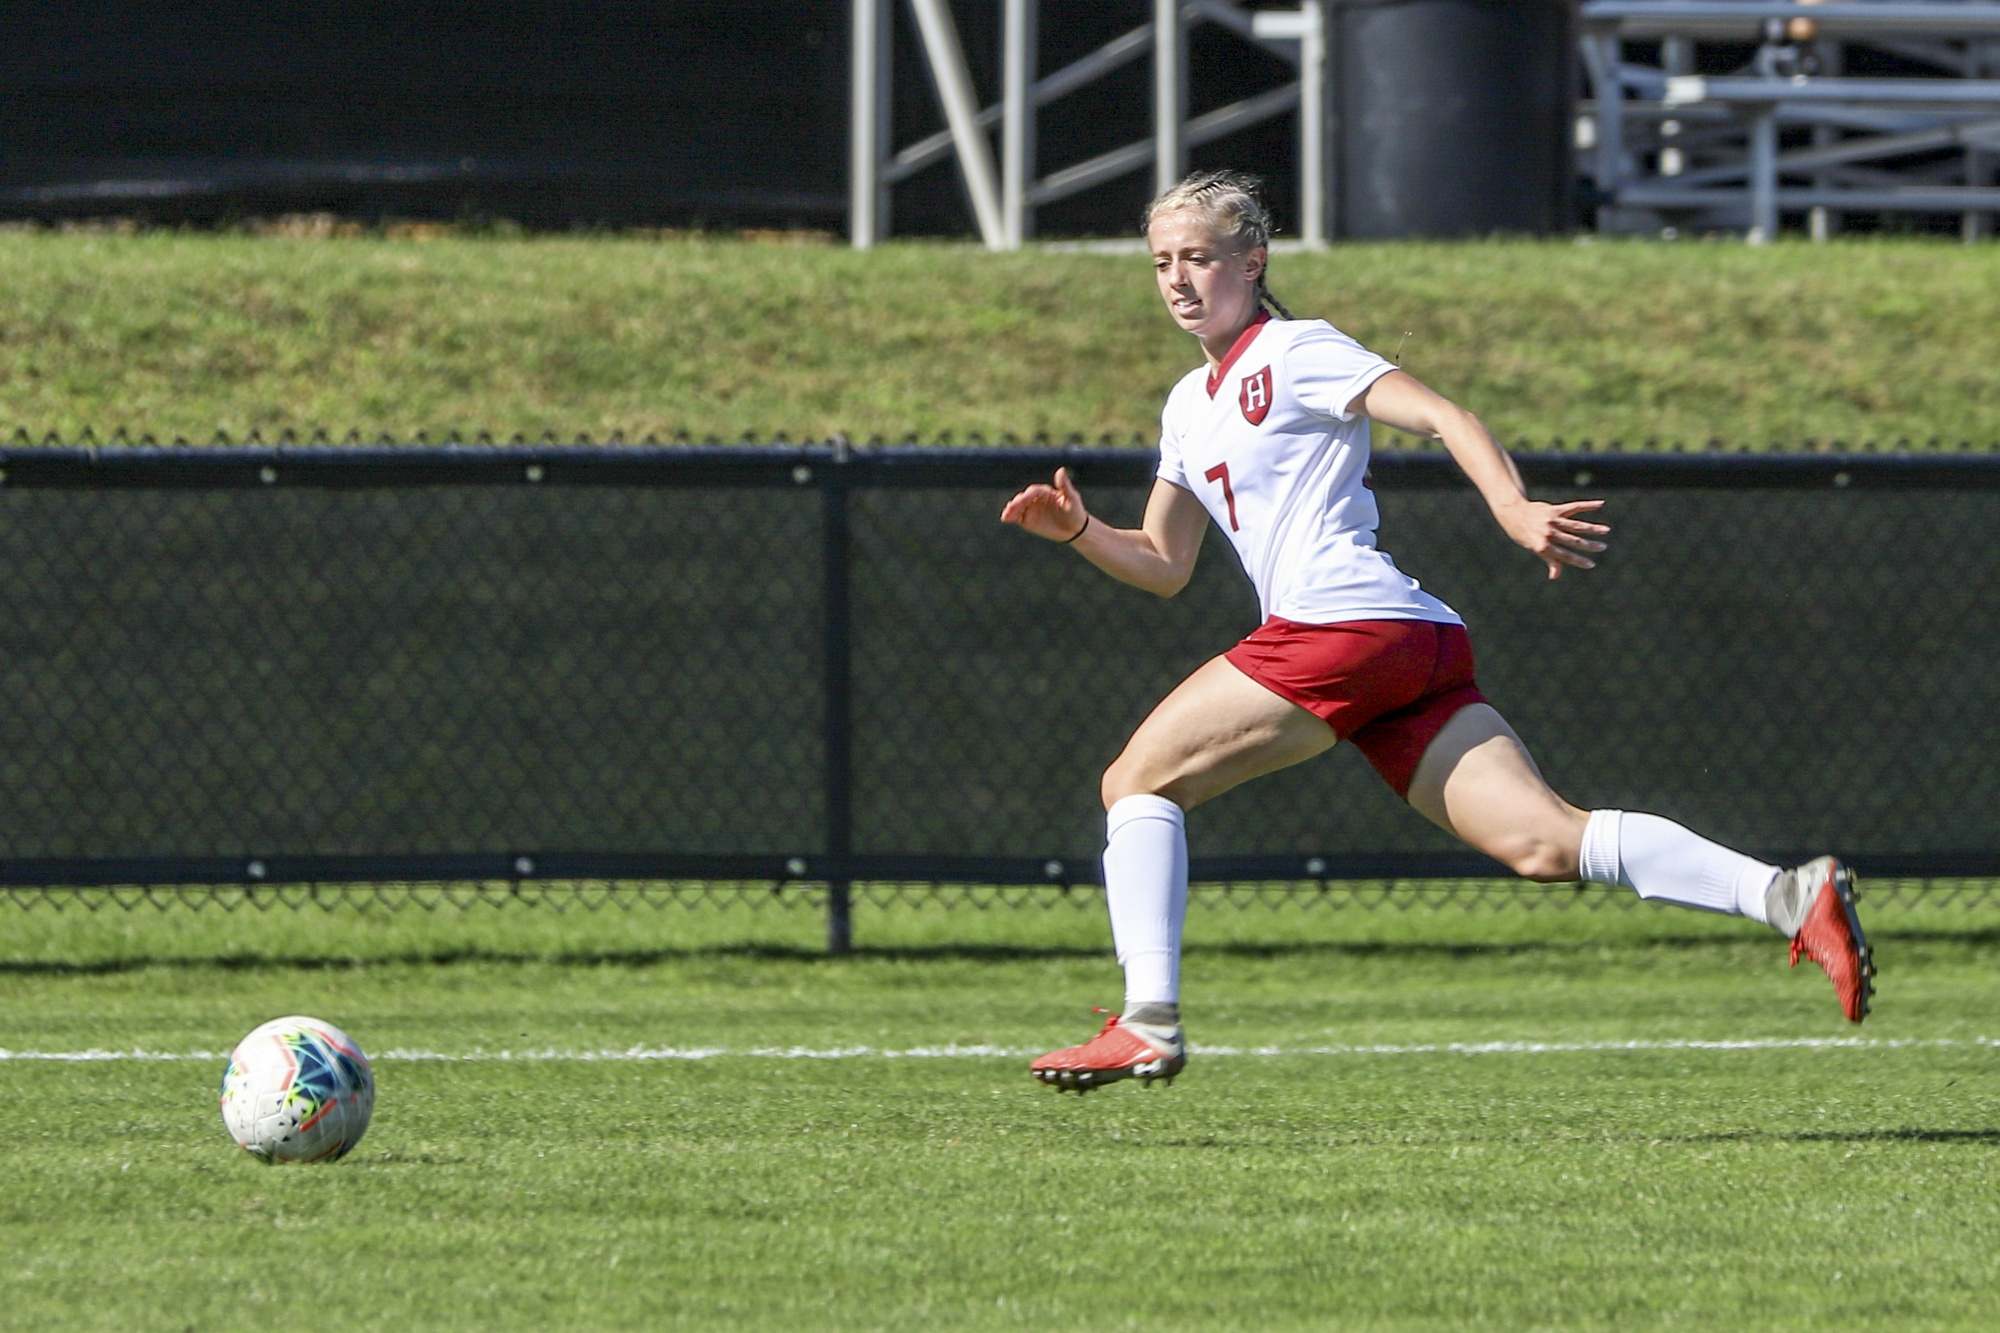 Soccer co-captain Megan Tveit is one of six roommates in Adams House, who are all captains of varsity teams.